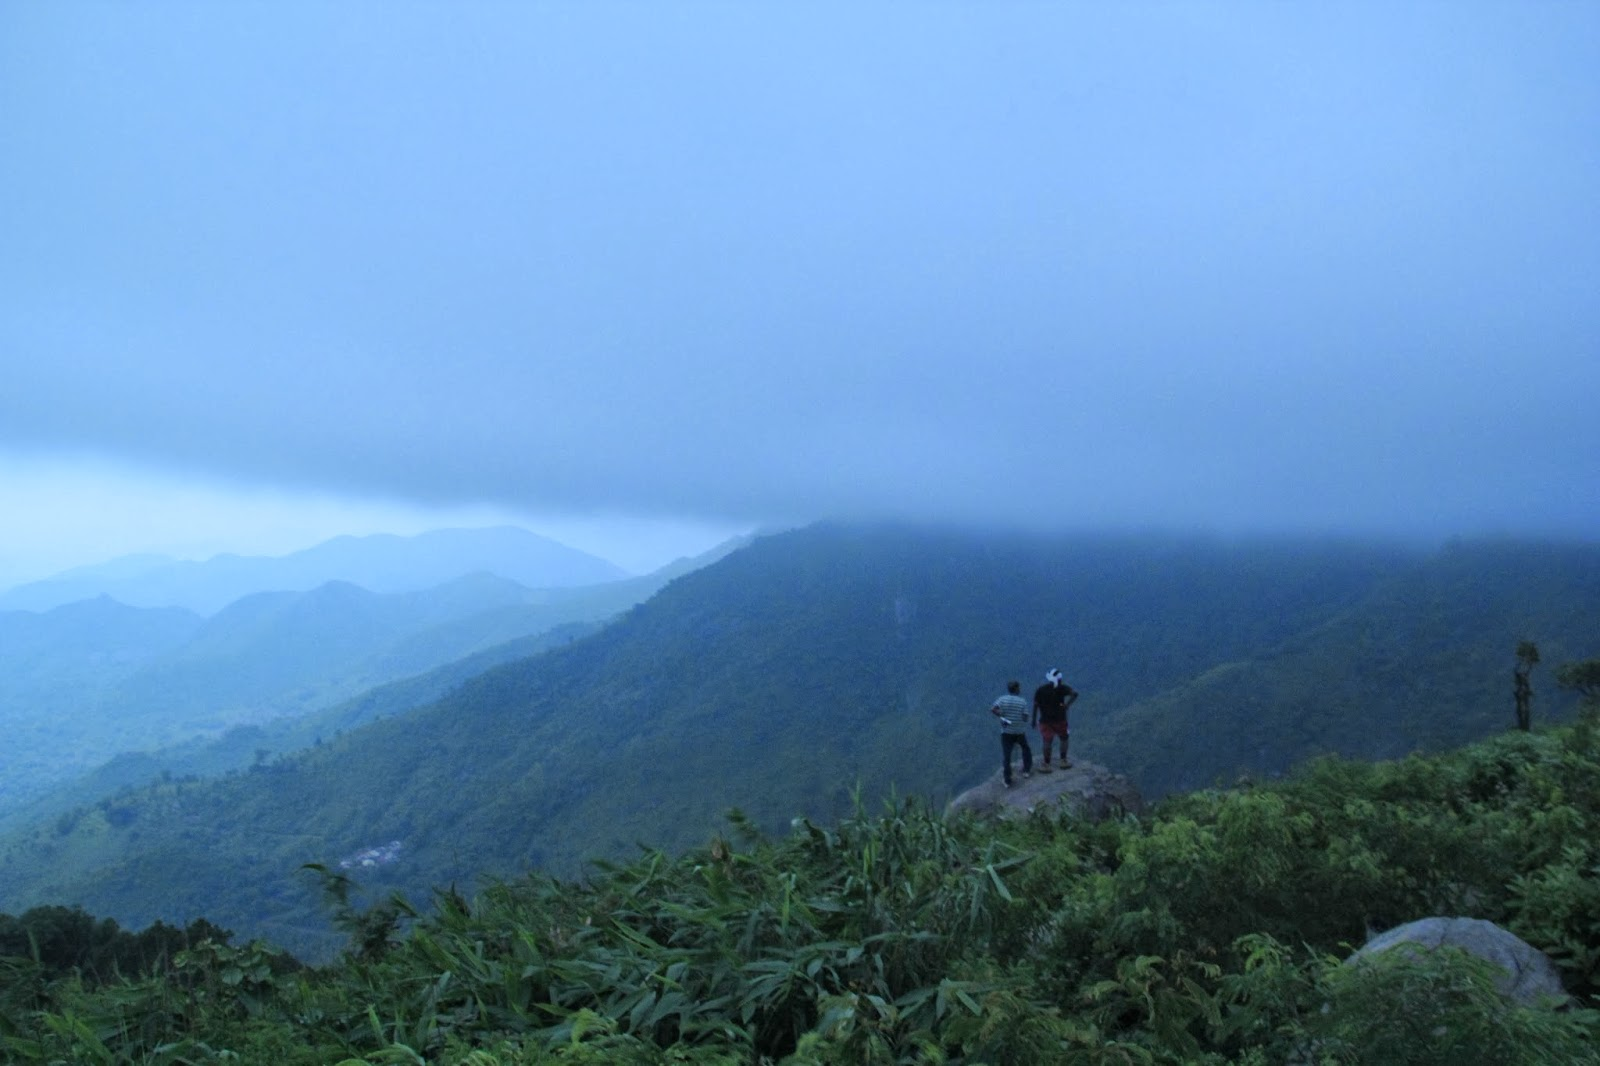 In search of route to mahendragiri